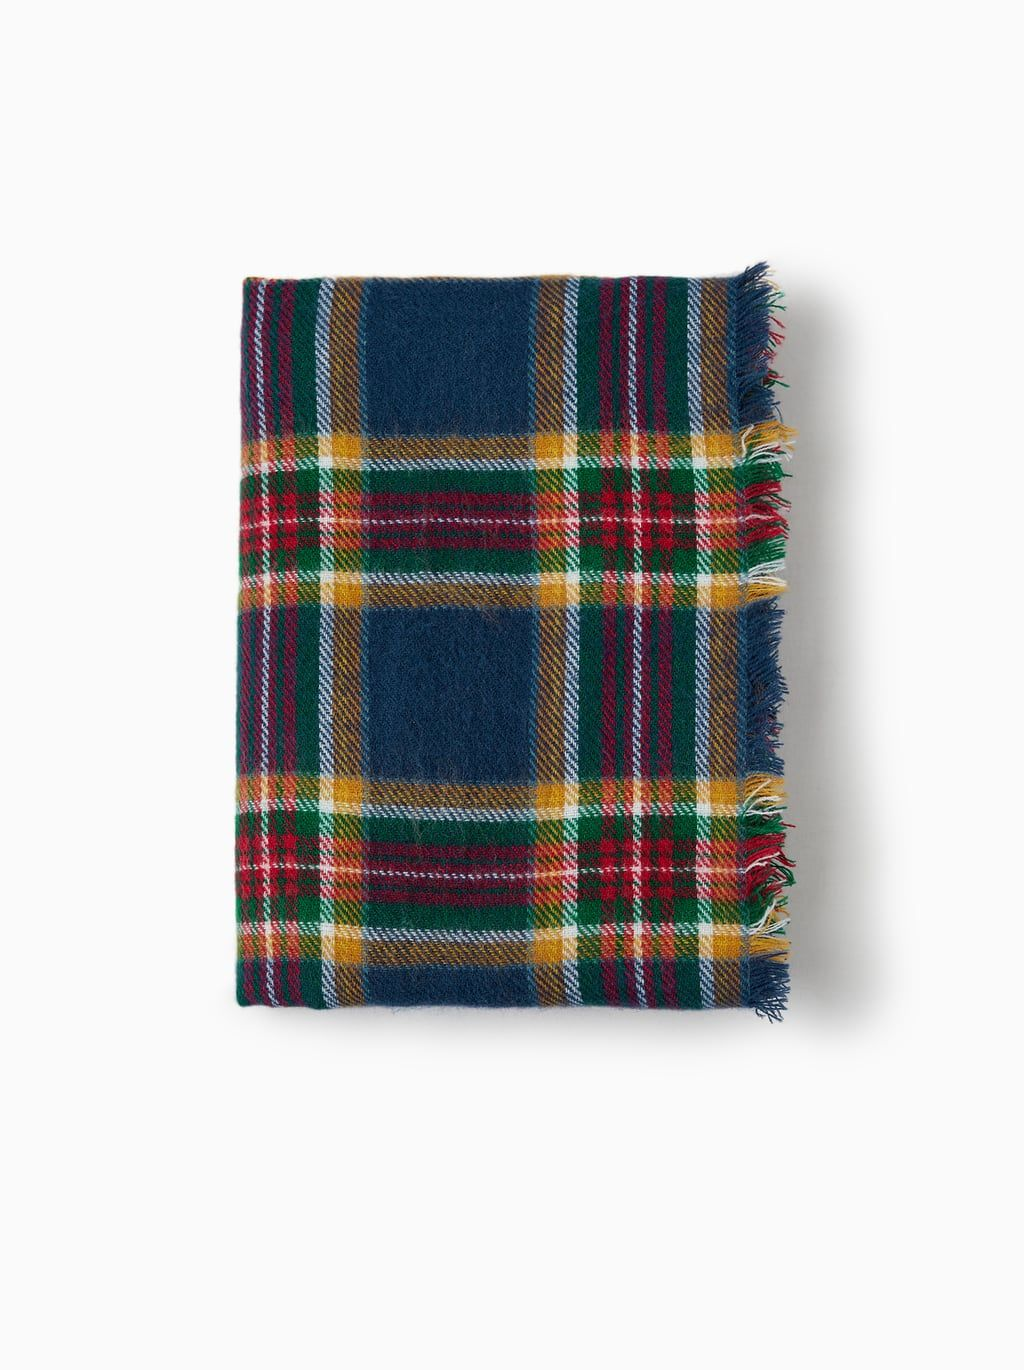 db410eee046c Image 1 of CHECKED SCARF from Zara   Miryea   Pinterest   Plaid ...